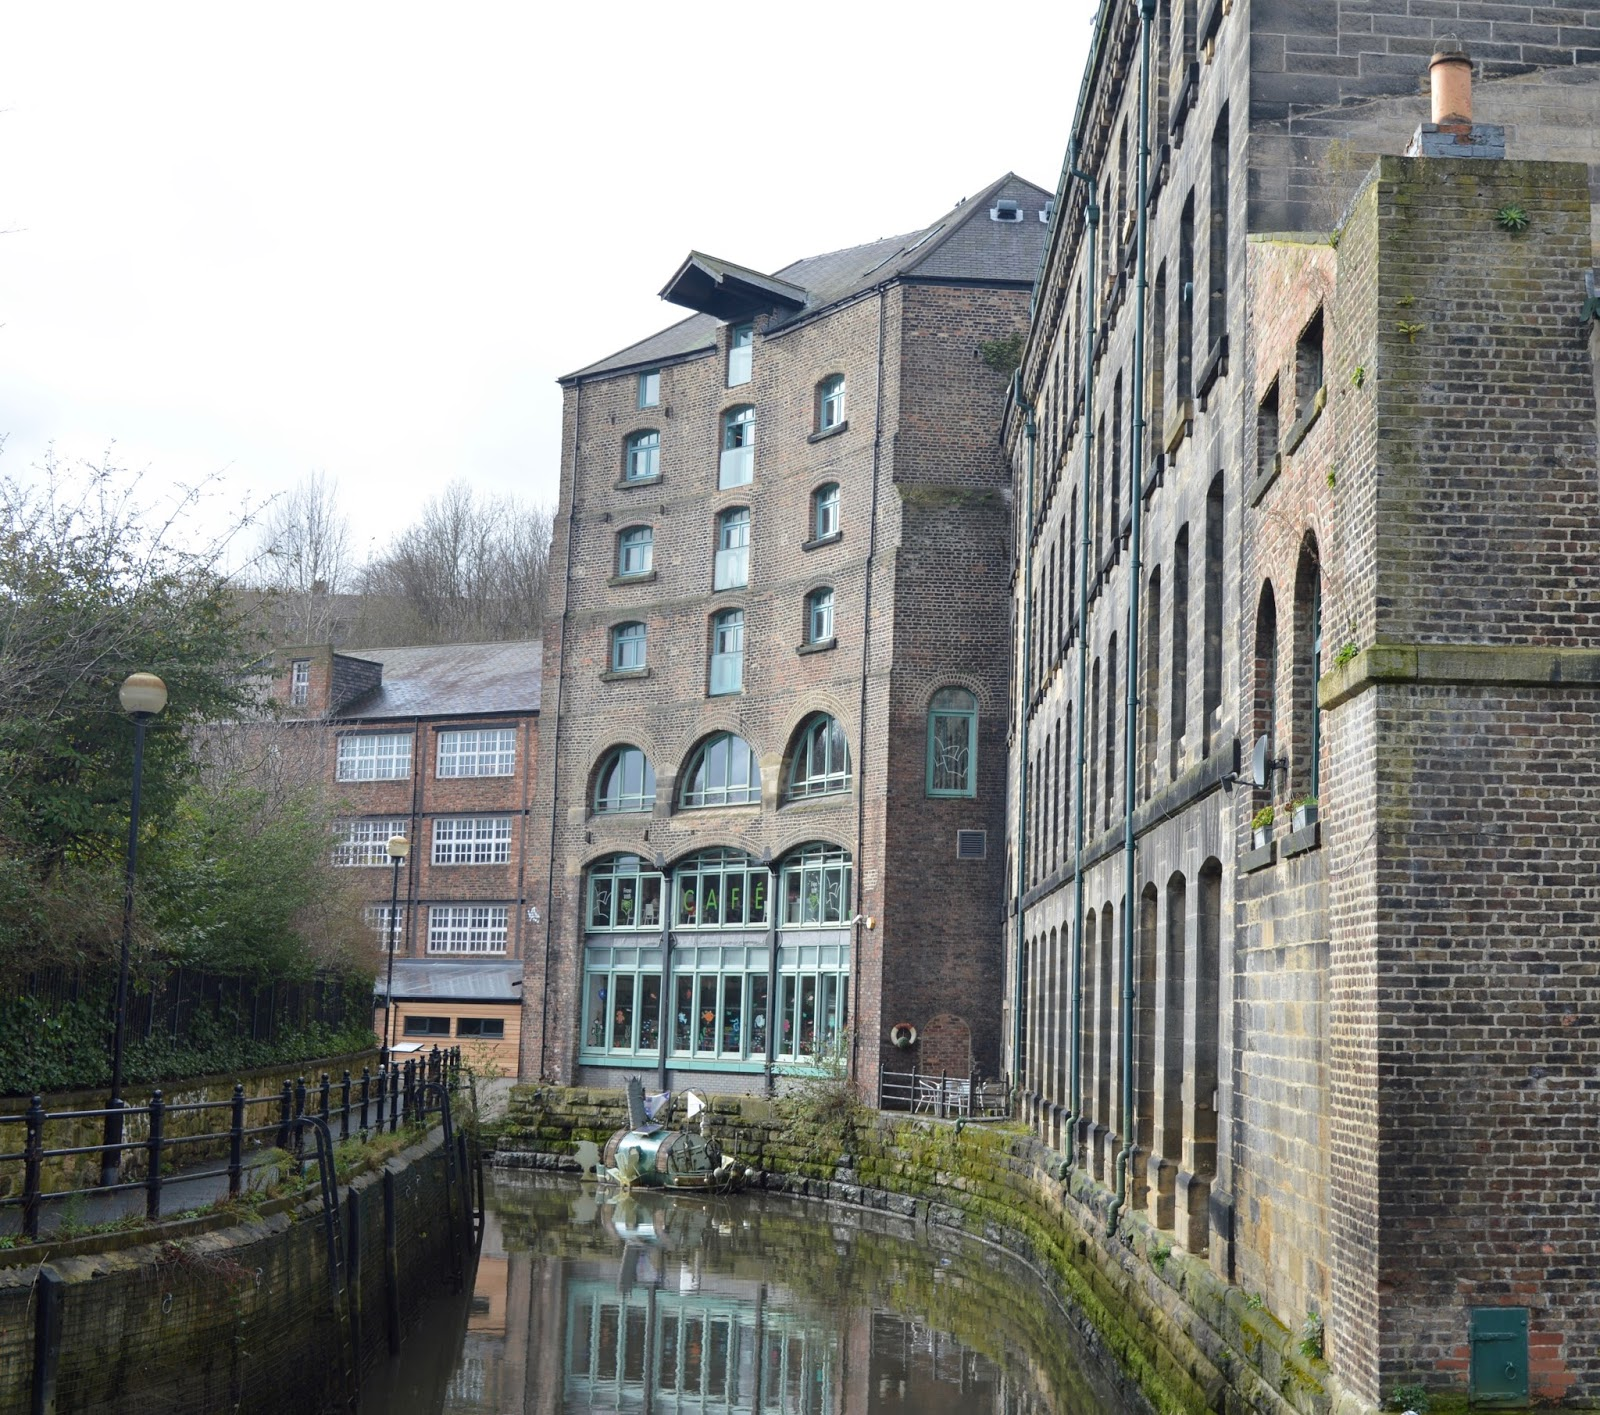 10 Things To Do In Ouseburn - children's books at Seven Stories